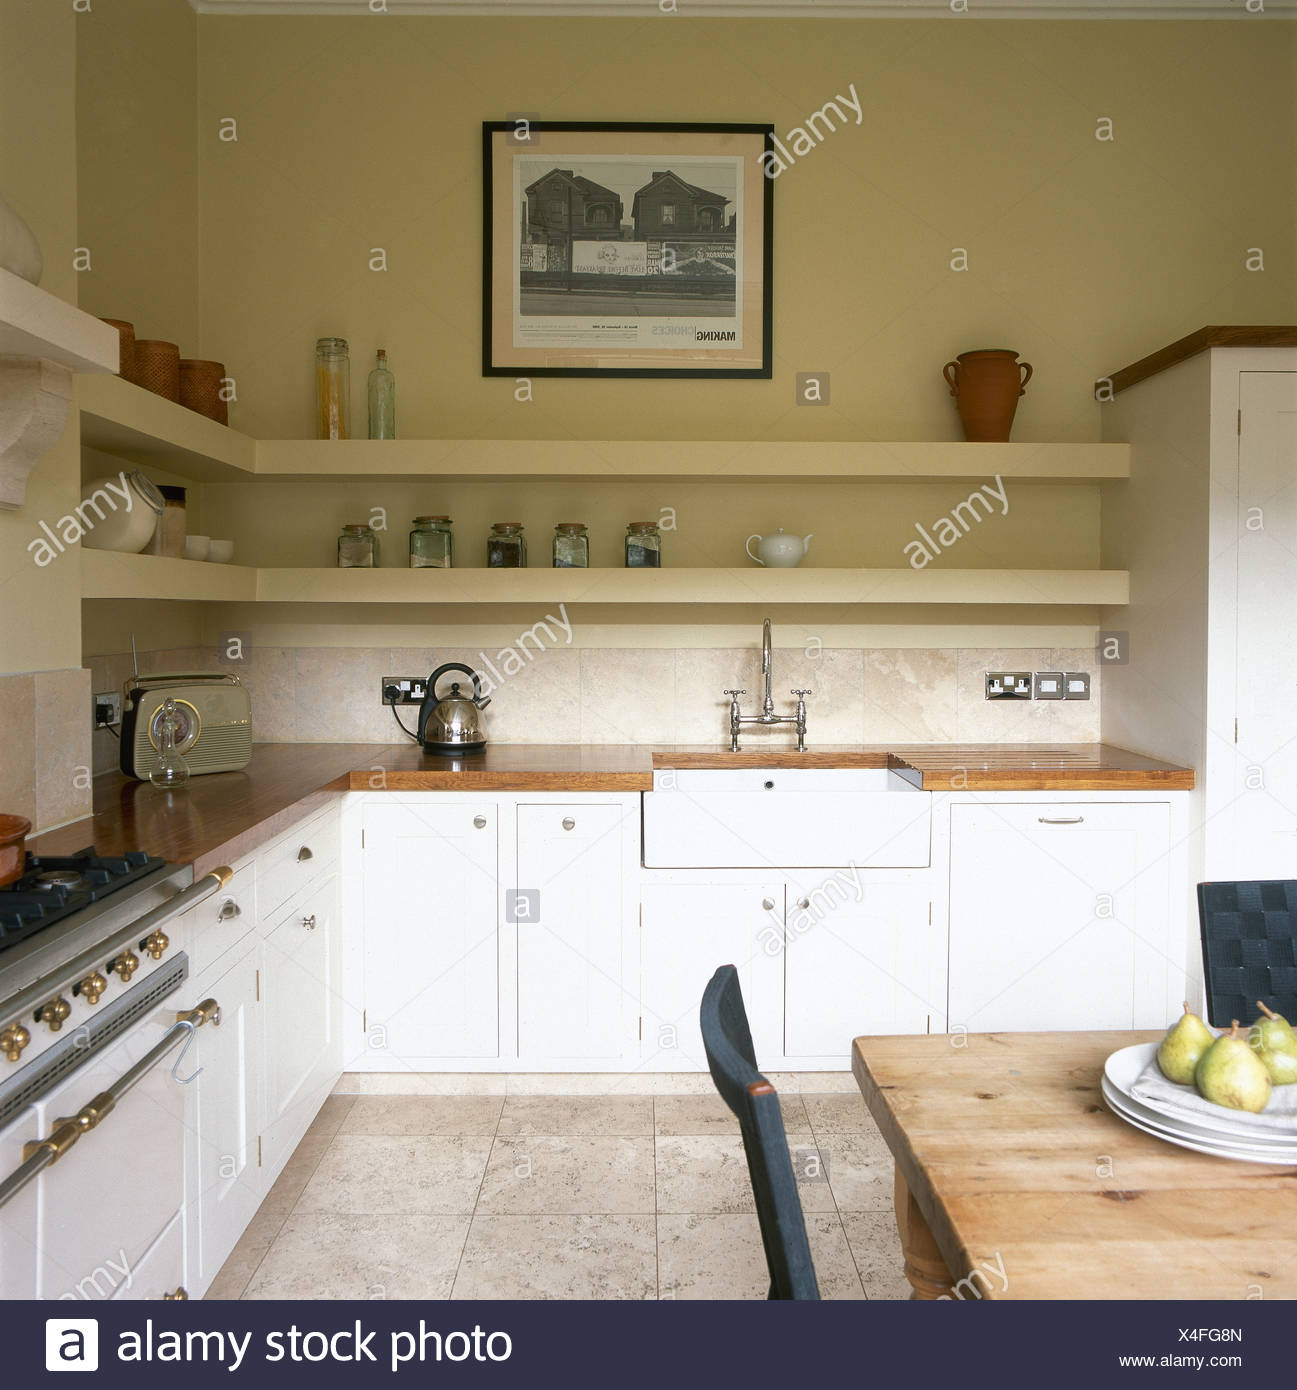 Kitchen Sink White Chairs Fridge And Vase On Table